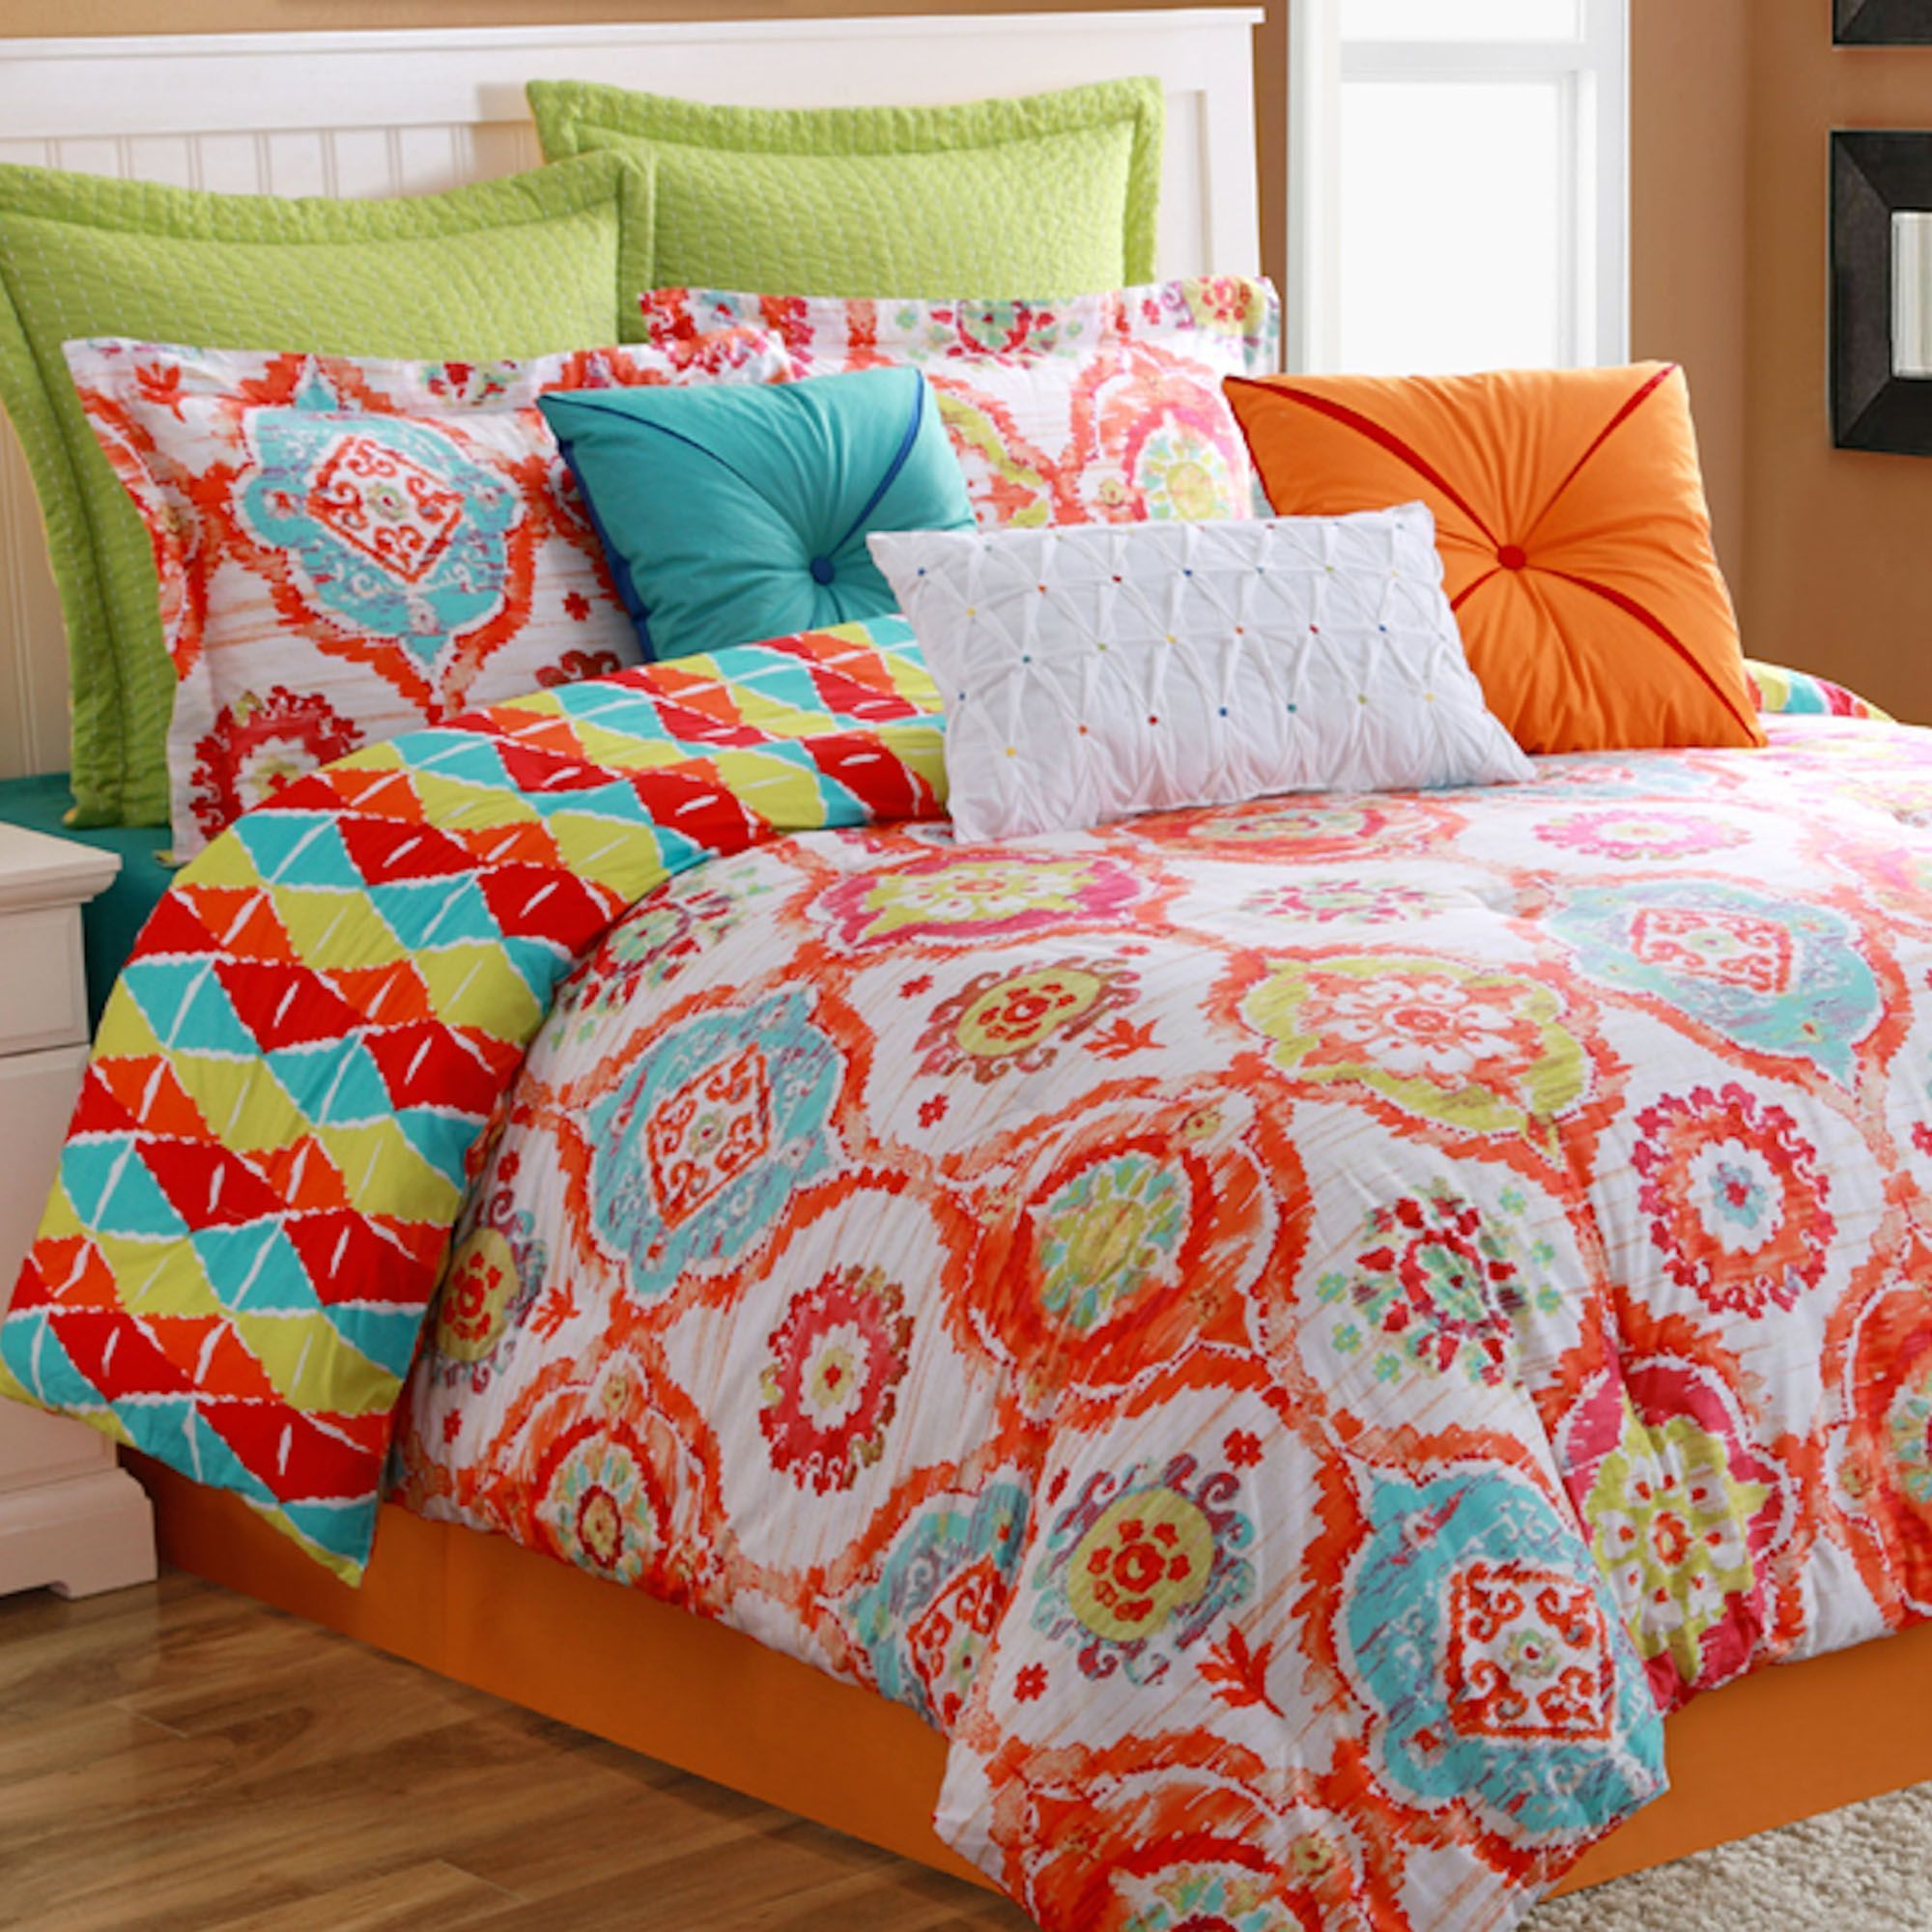 Bedroom Colorful Bohemian Comforter Sets Full Comforter For Bed Covering Idea In 2020 Comforter Sets Full Comforter Sets Twin Comforter Sets